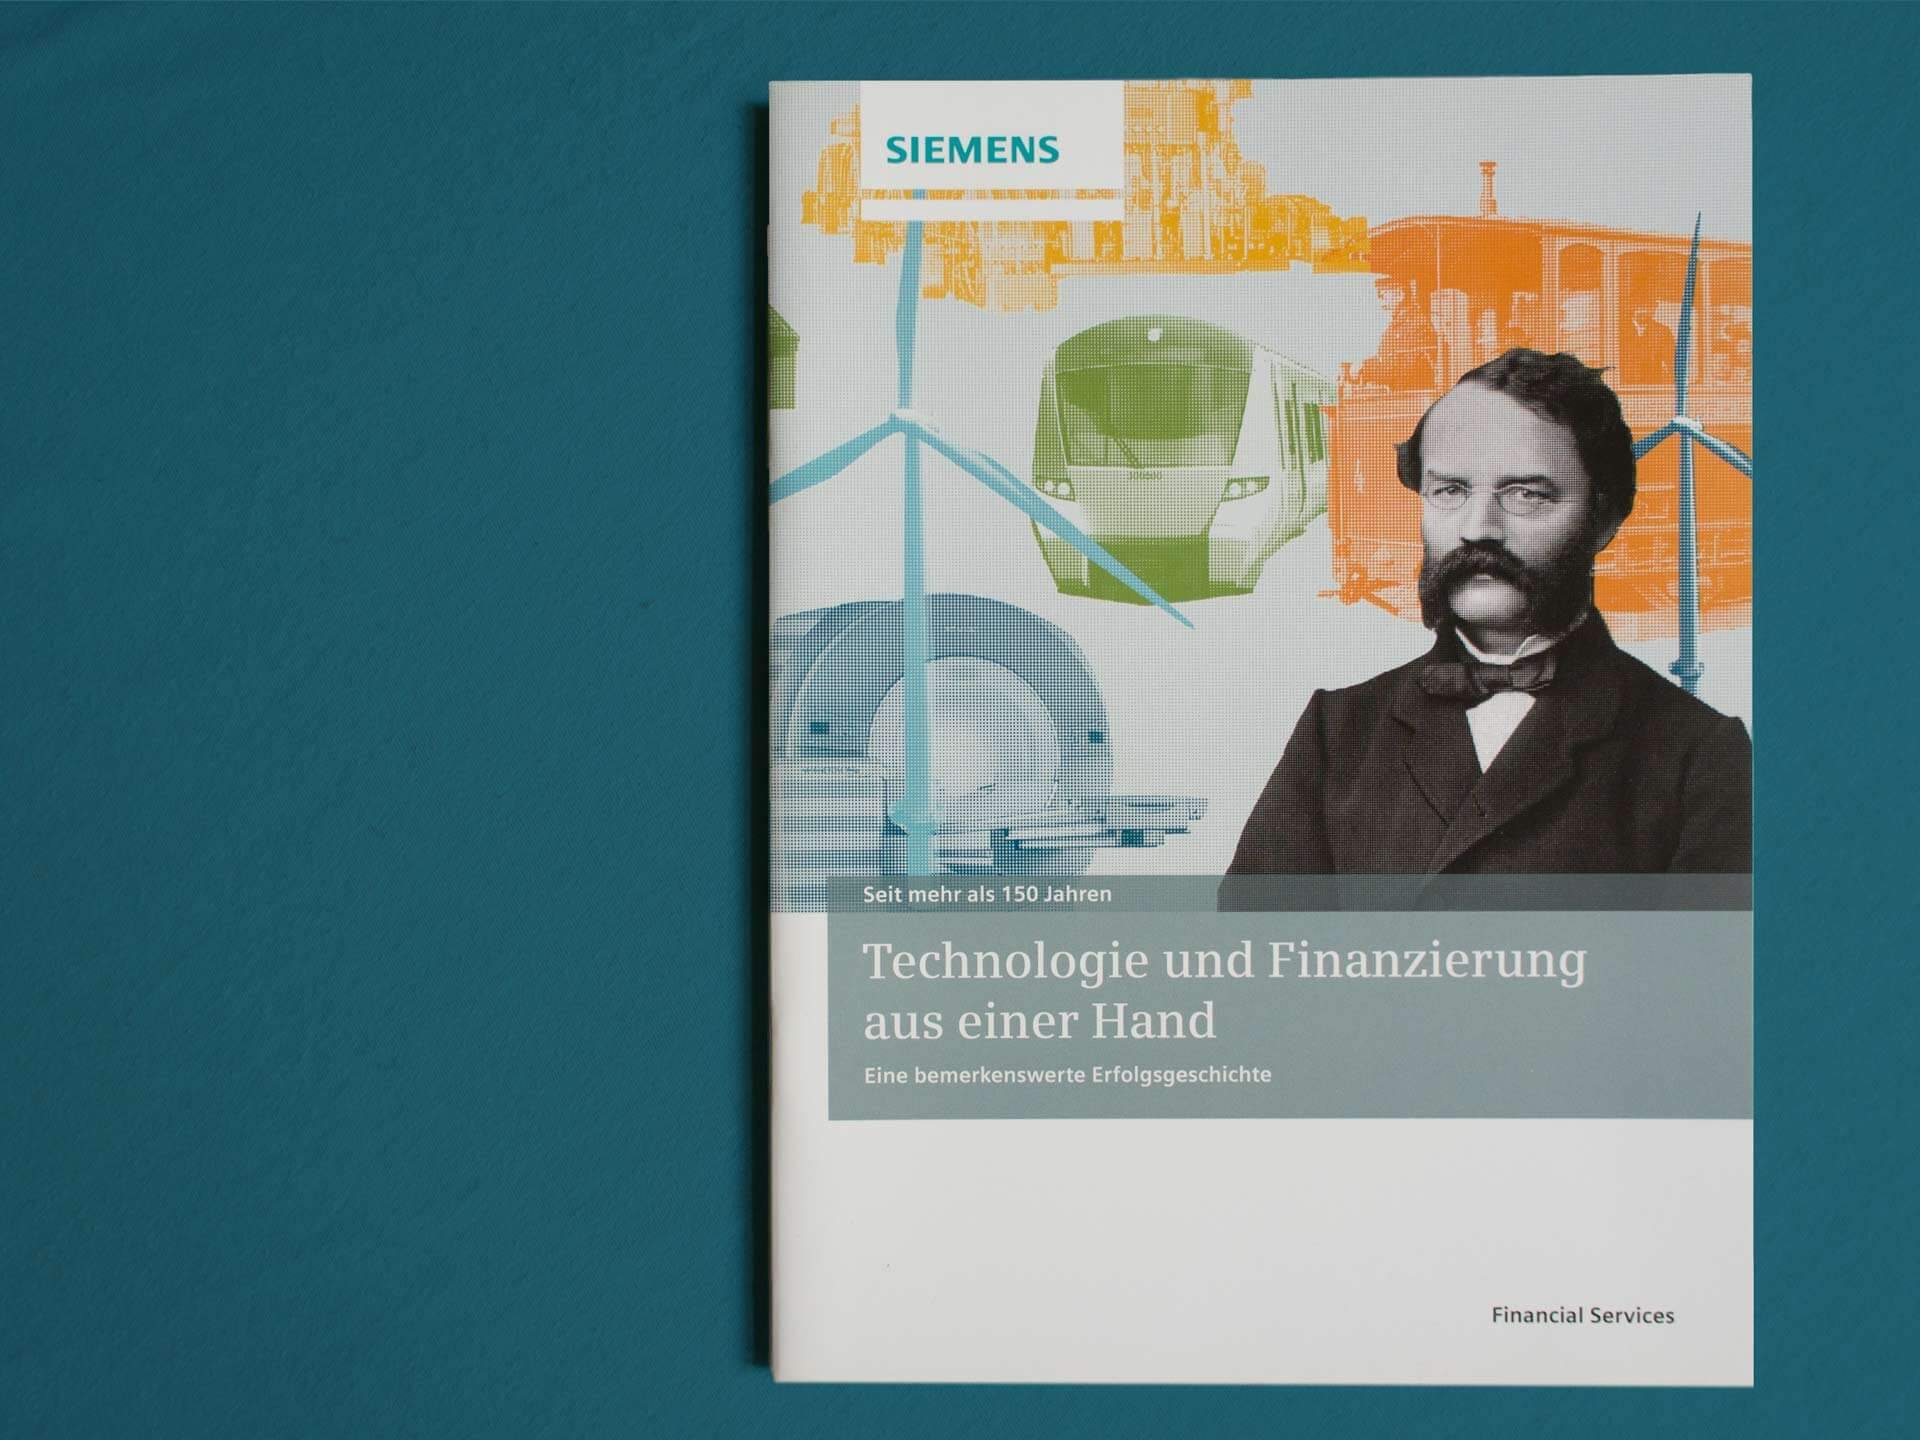 Photo of History Brochure Cover für Siemens Financial Services. Collage of old and new Imagery and Werner von Siemens.